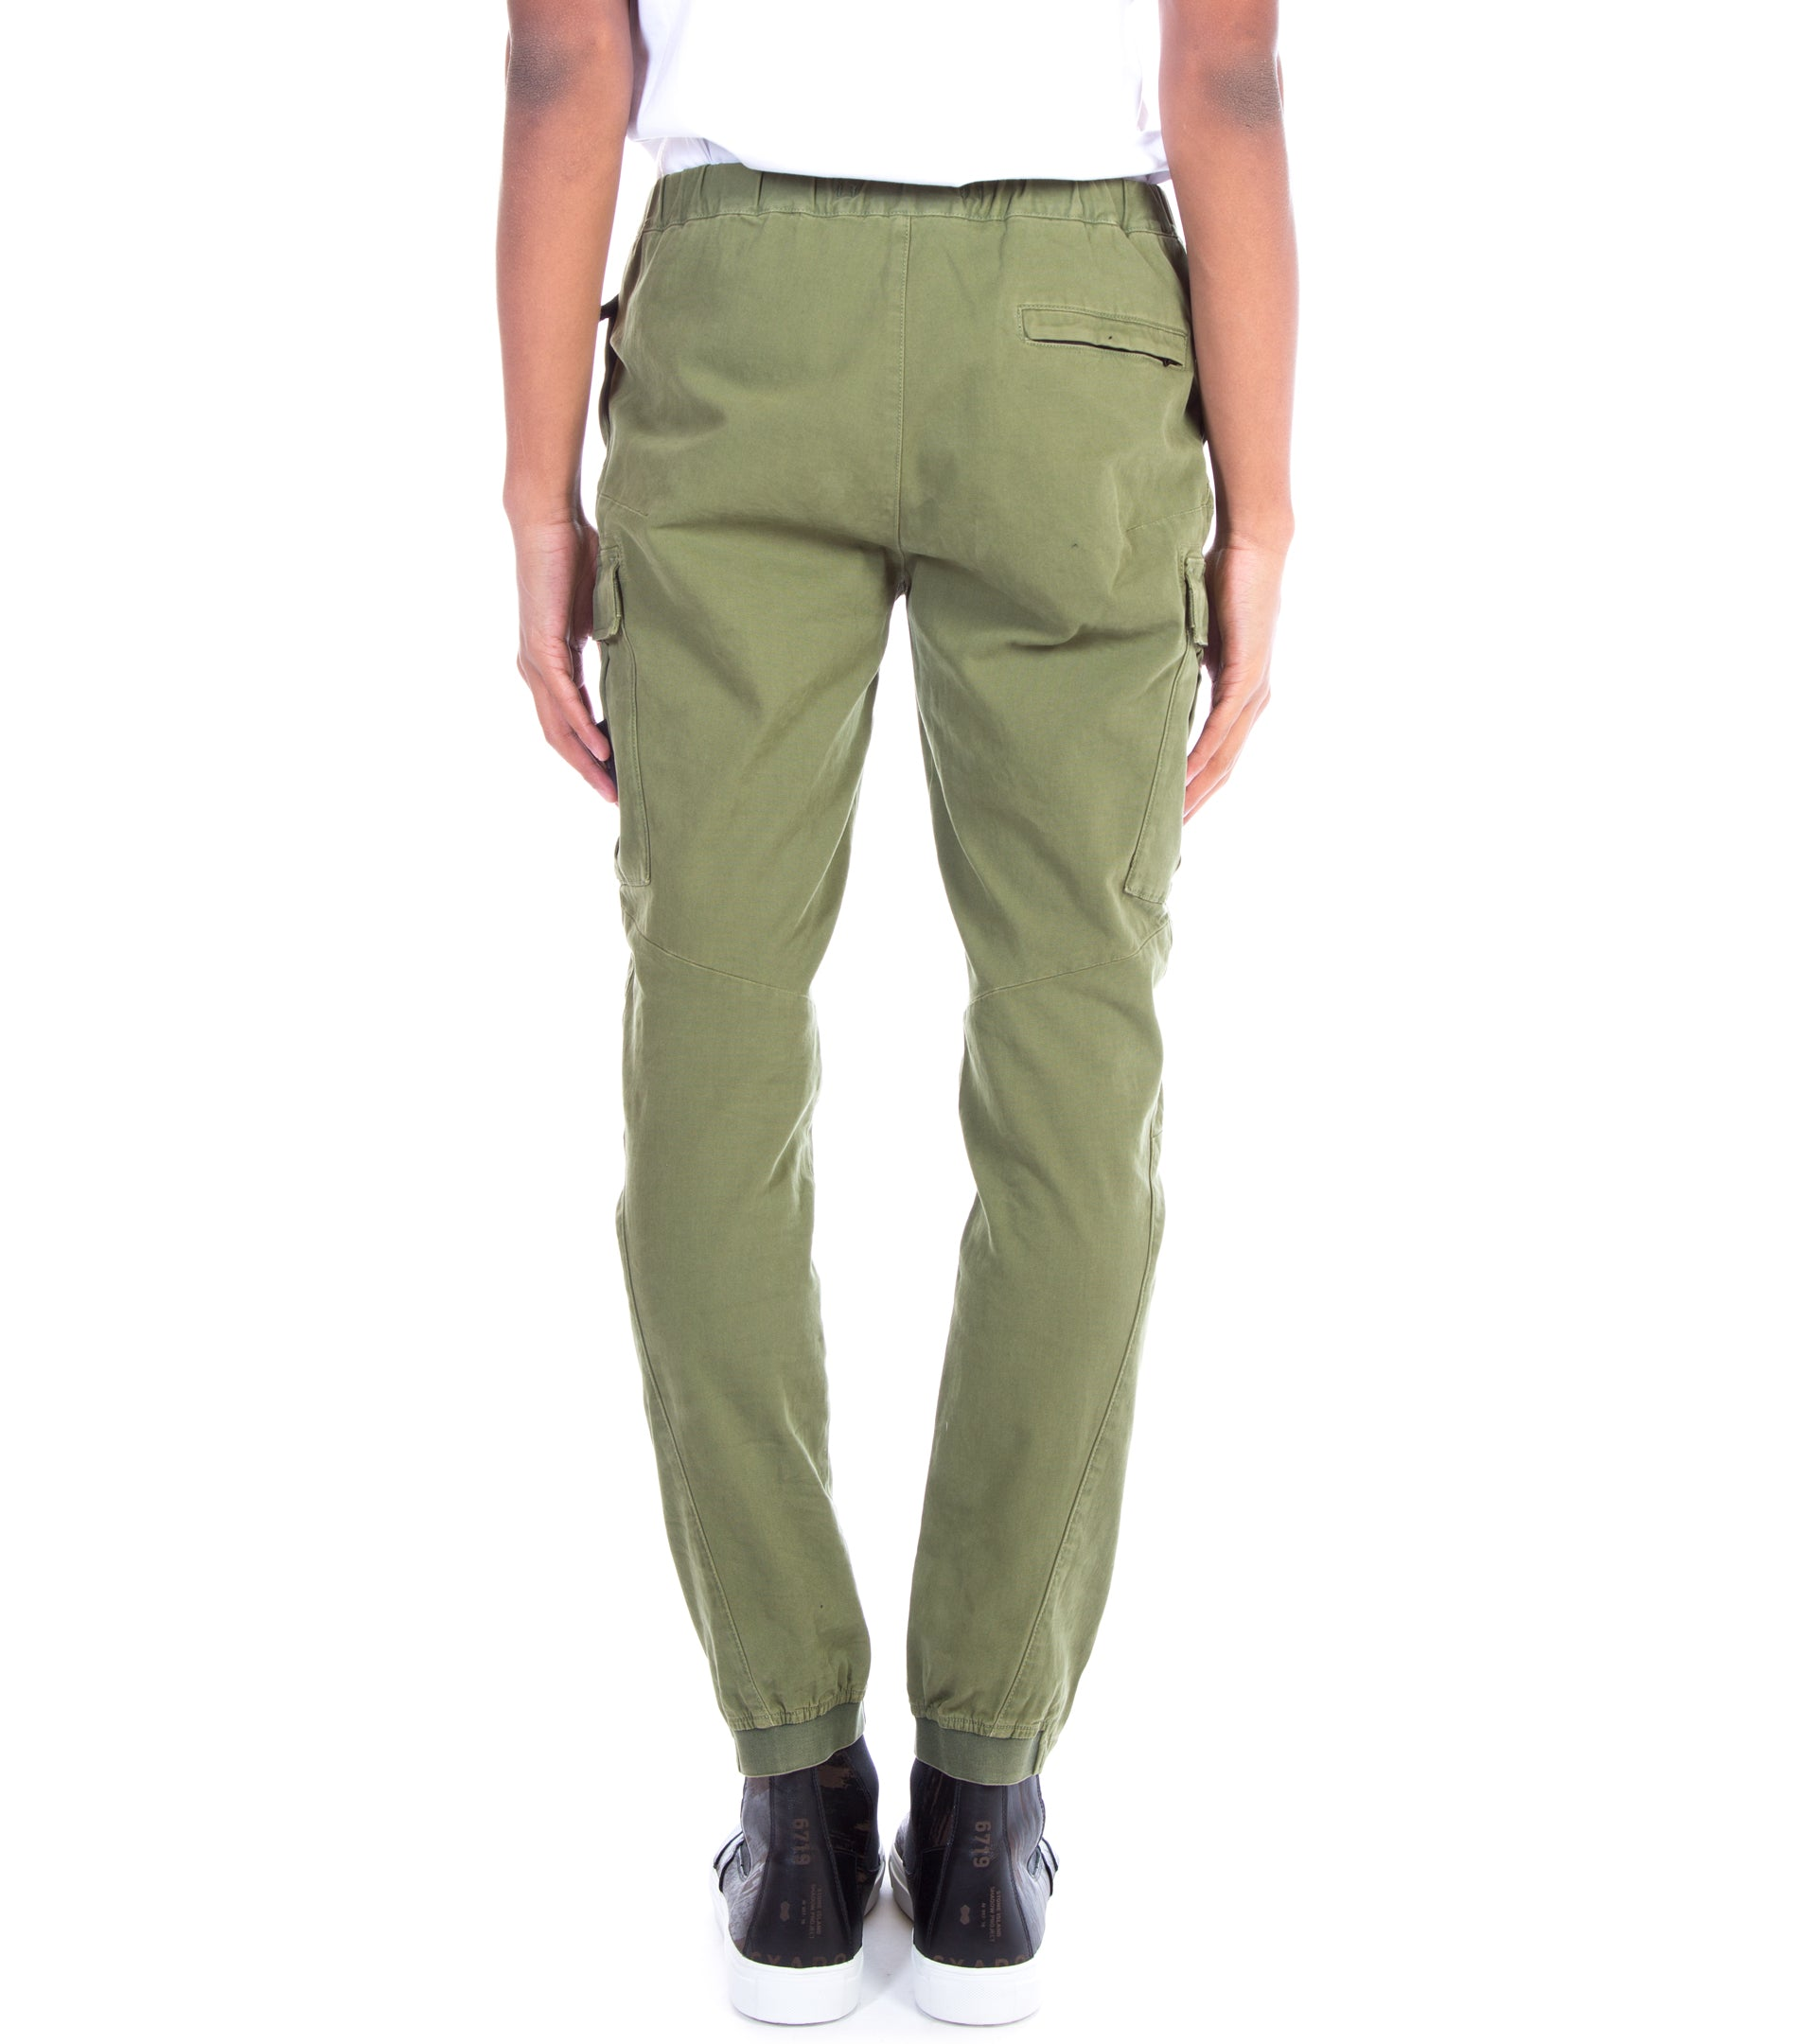 T.CO+OLD CARGO TROUSERS